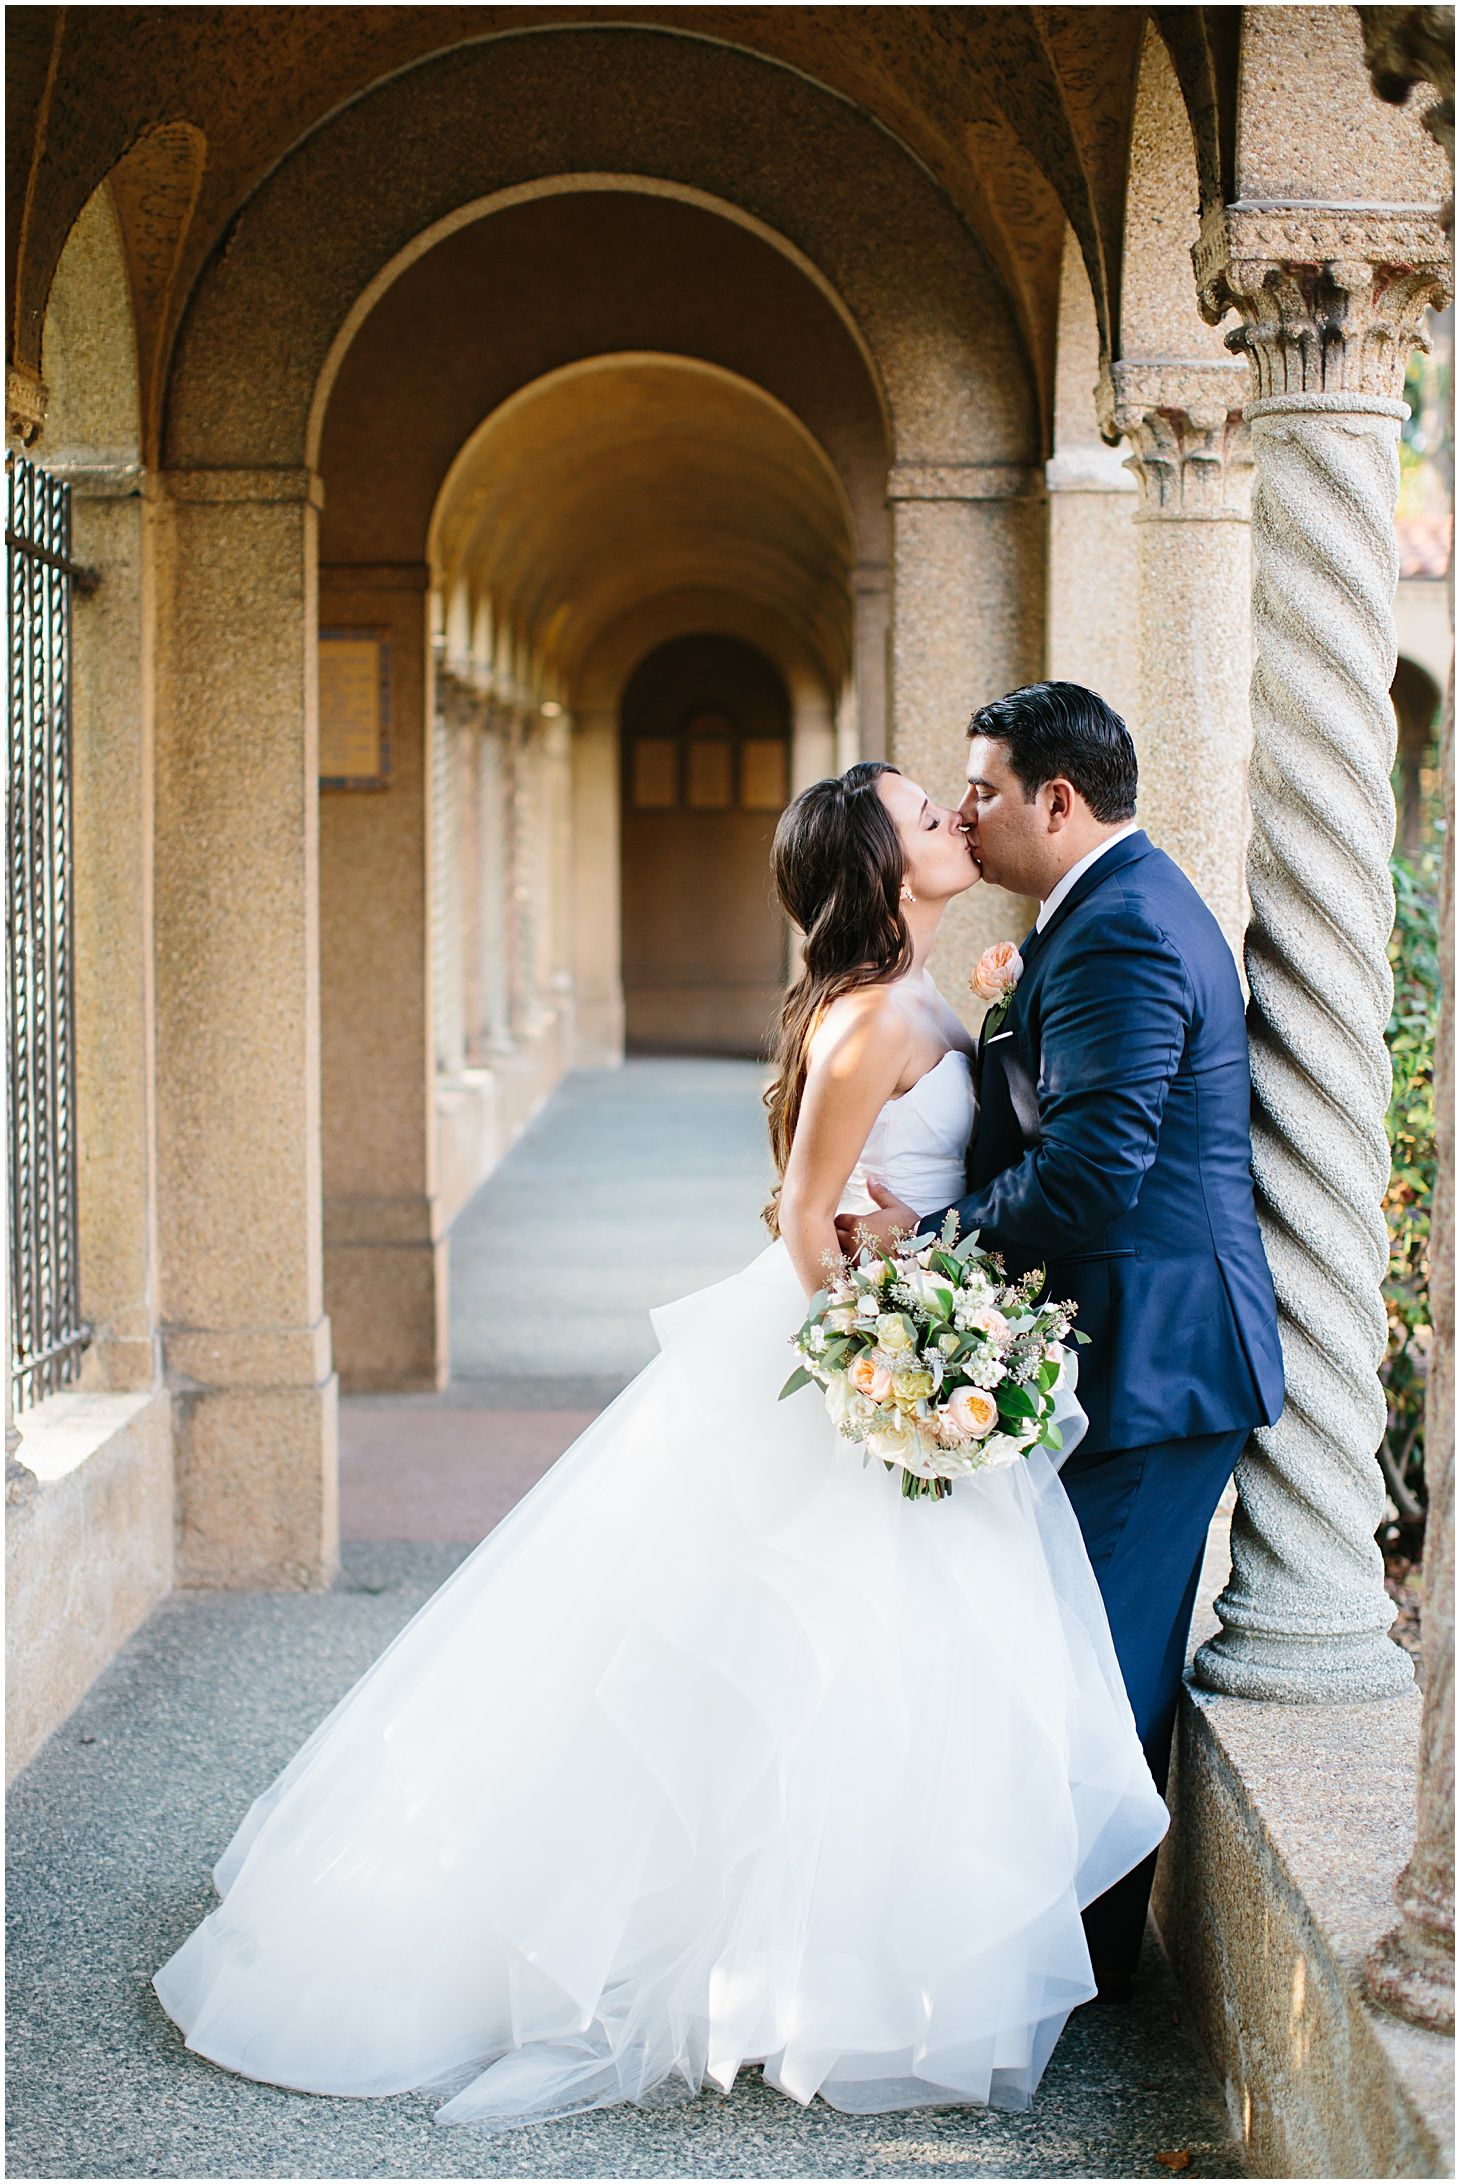 Published in The Knot DC, Maryland, & Virginia Magazine